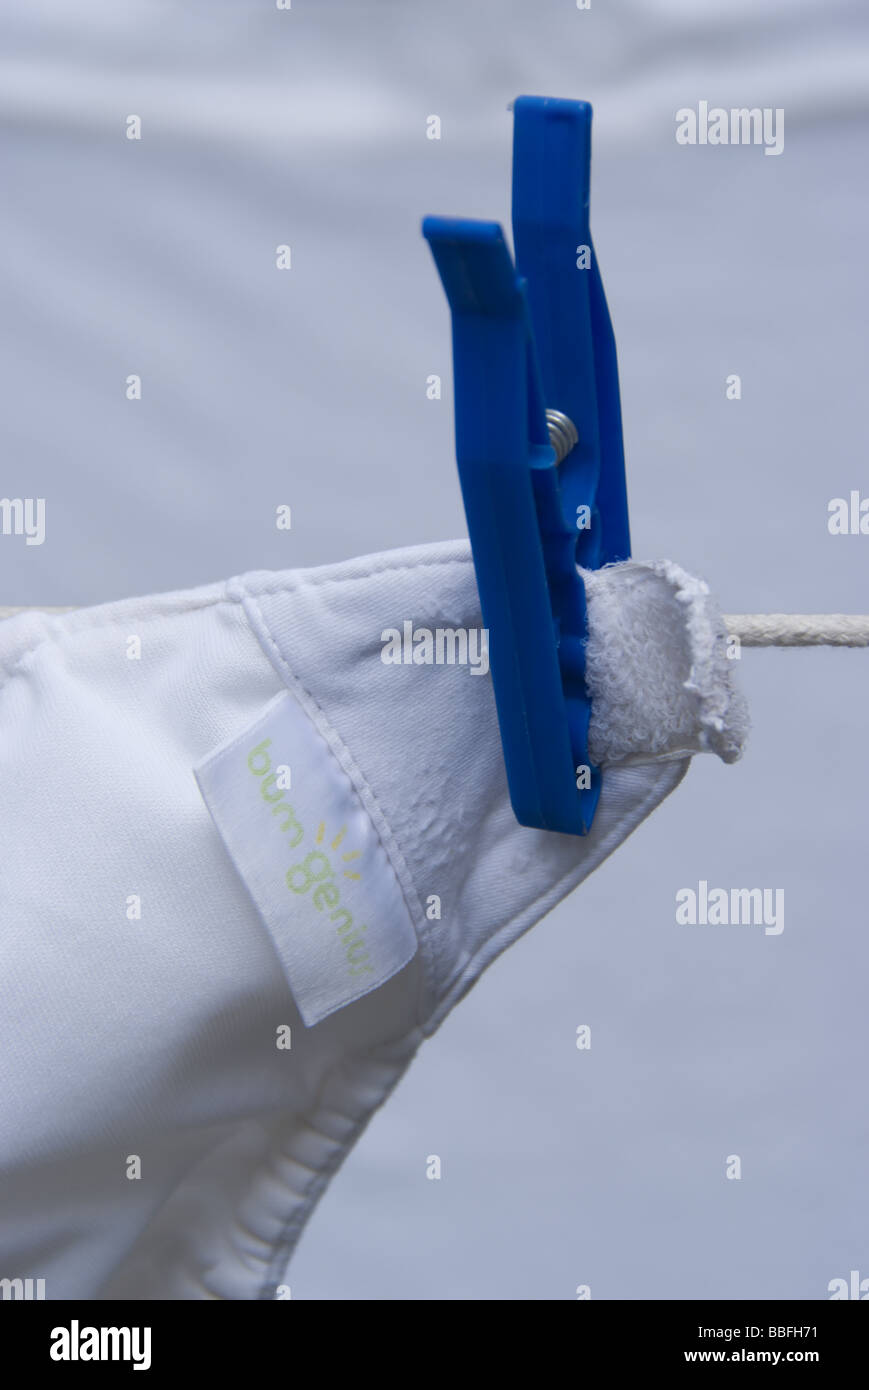 A real nappy drying on a washing line - Stock Image